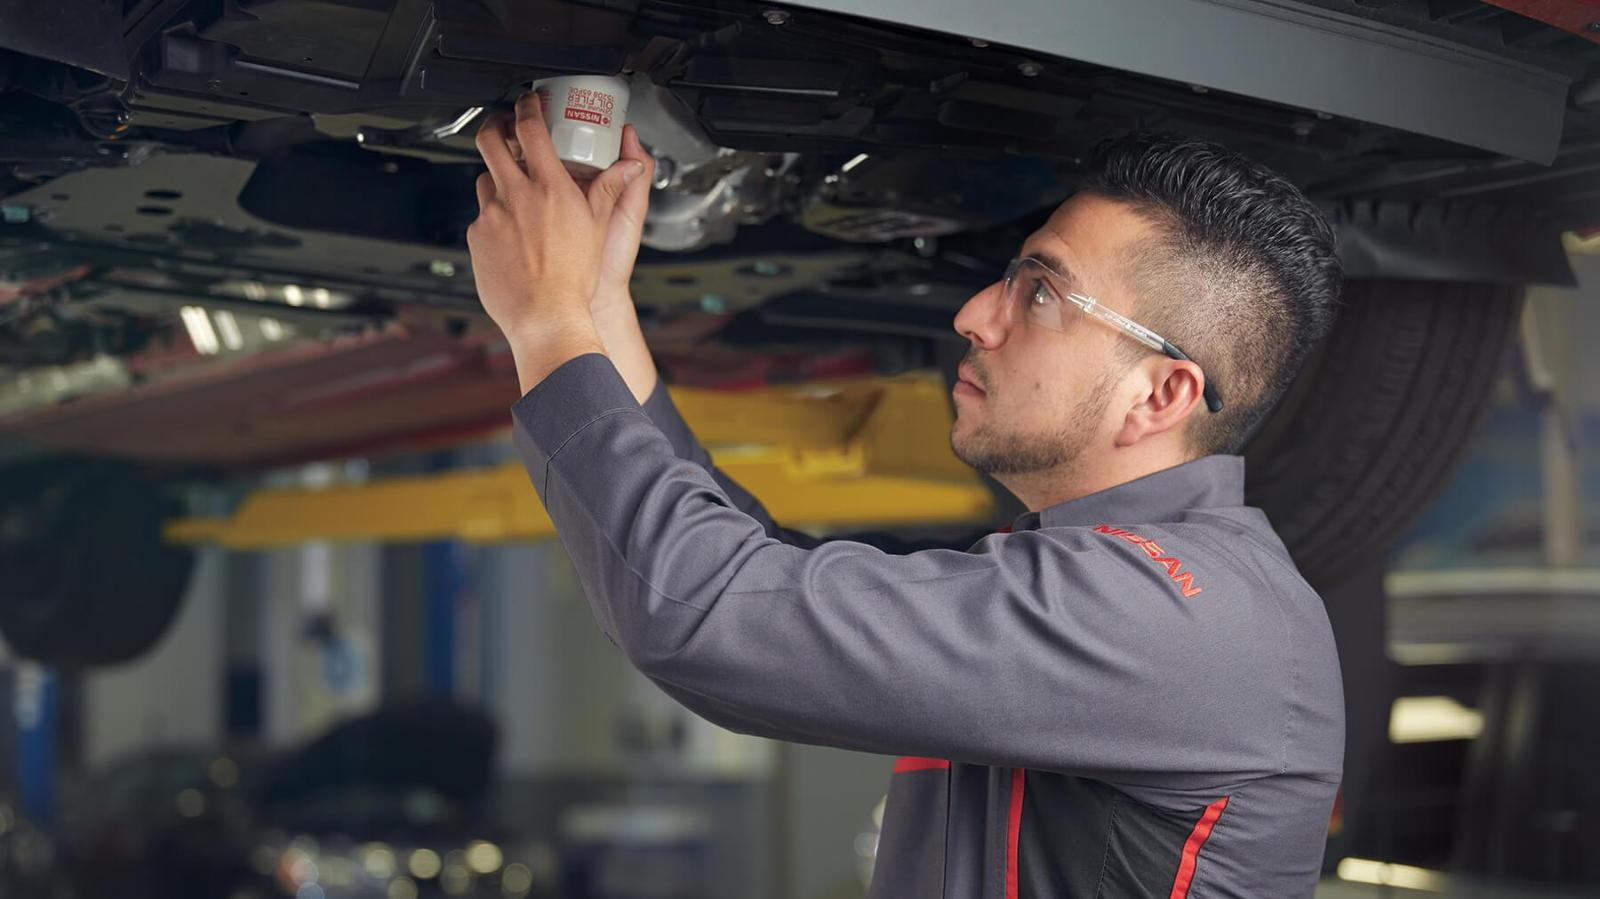 Nissan Technician Changing the Filter on Vehicle